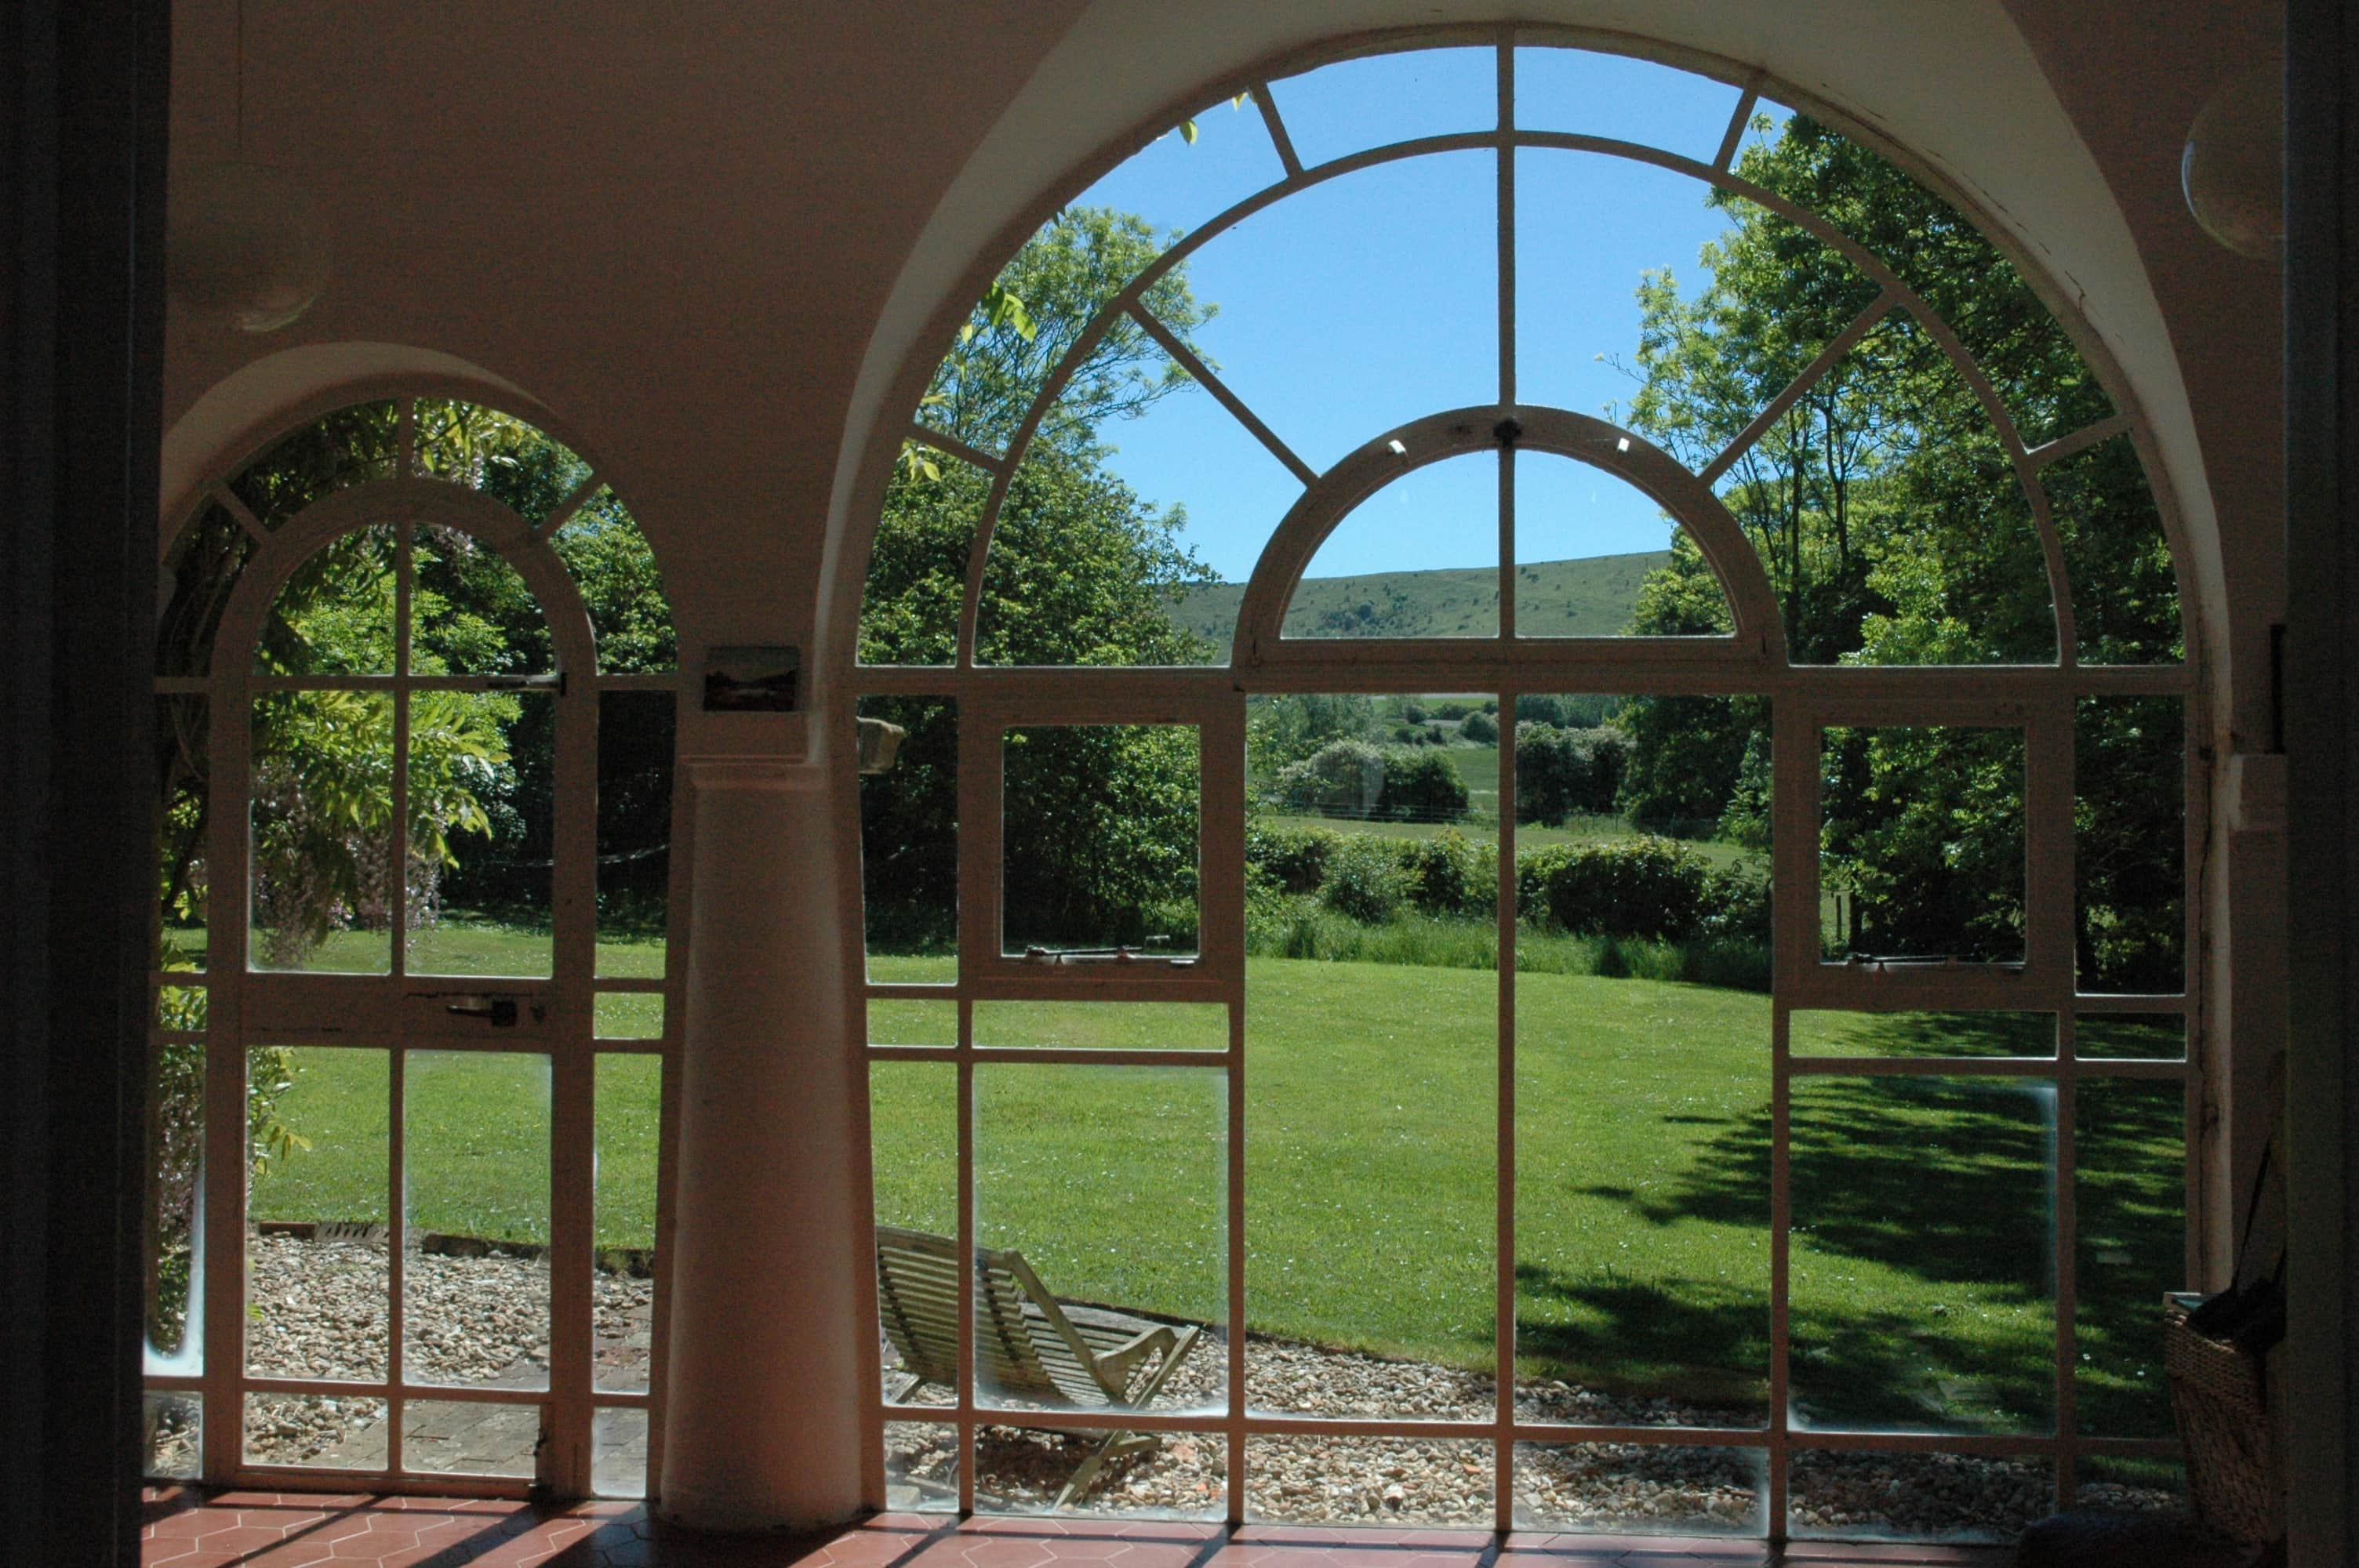 YogaWithVickiB ladies weekend Yoga Retreat, being held at Tilton House, Sussex - Arch onto Downs